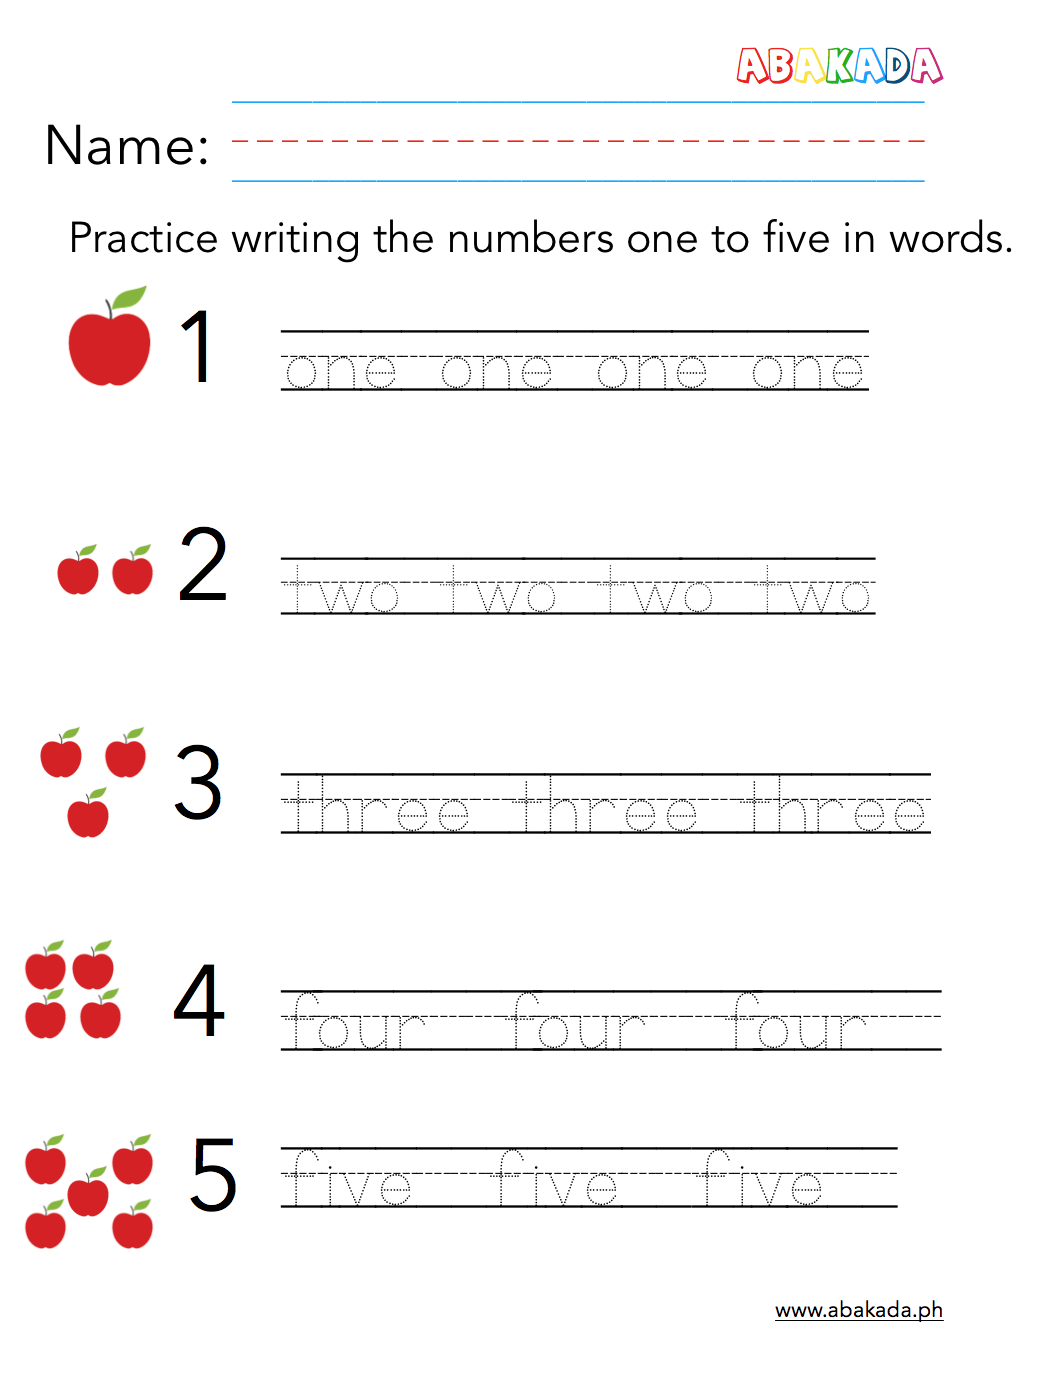 Free Preschool Worksheet Abakada